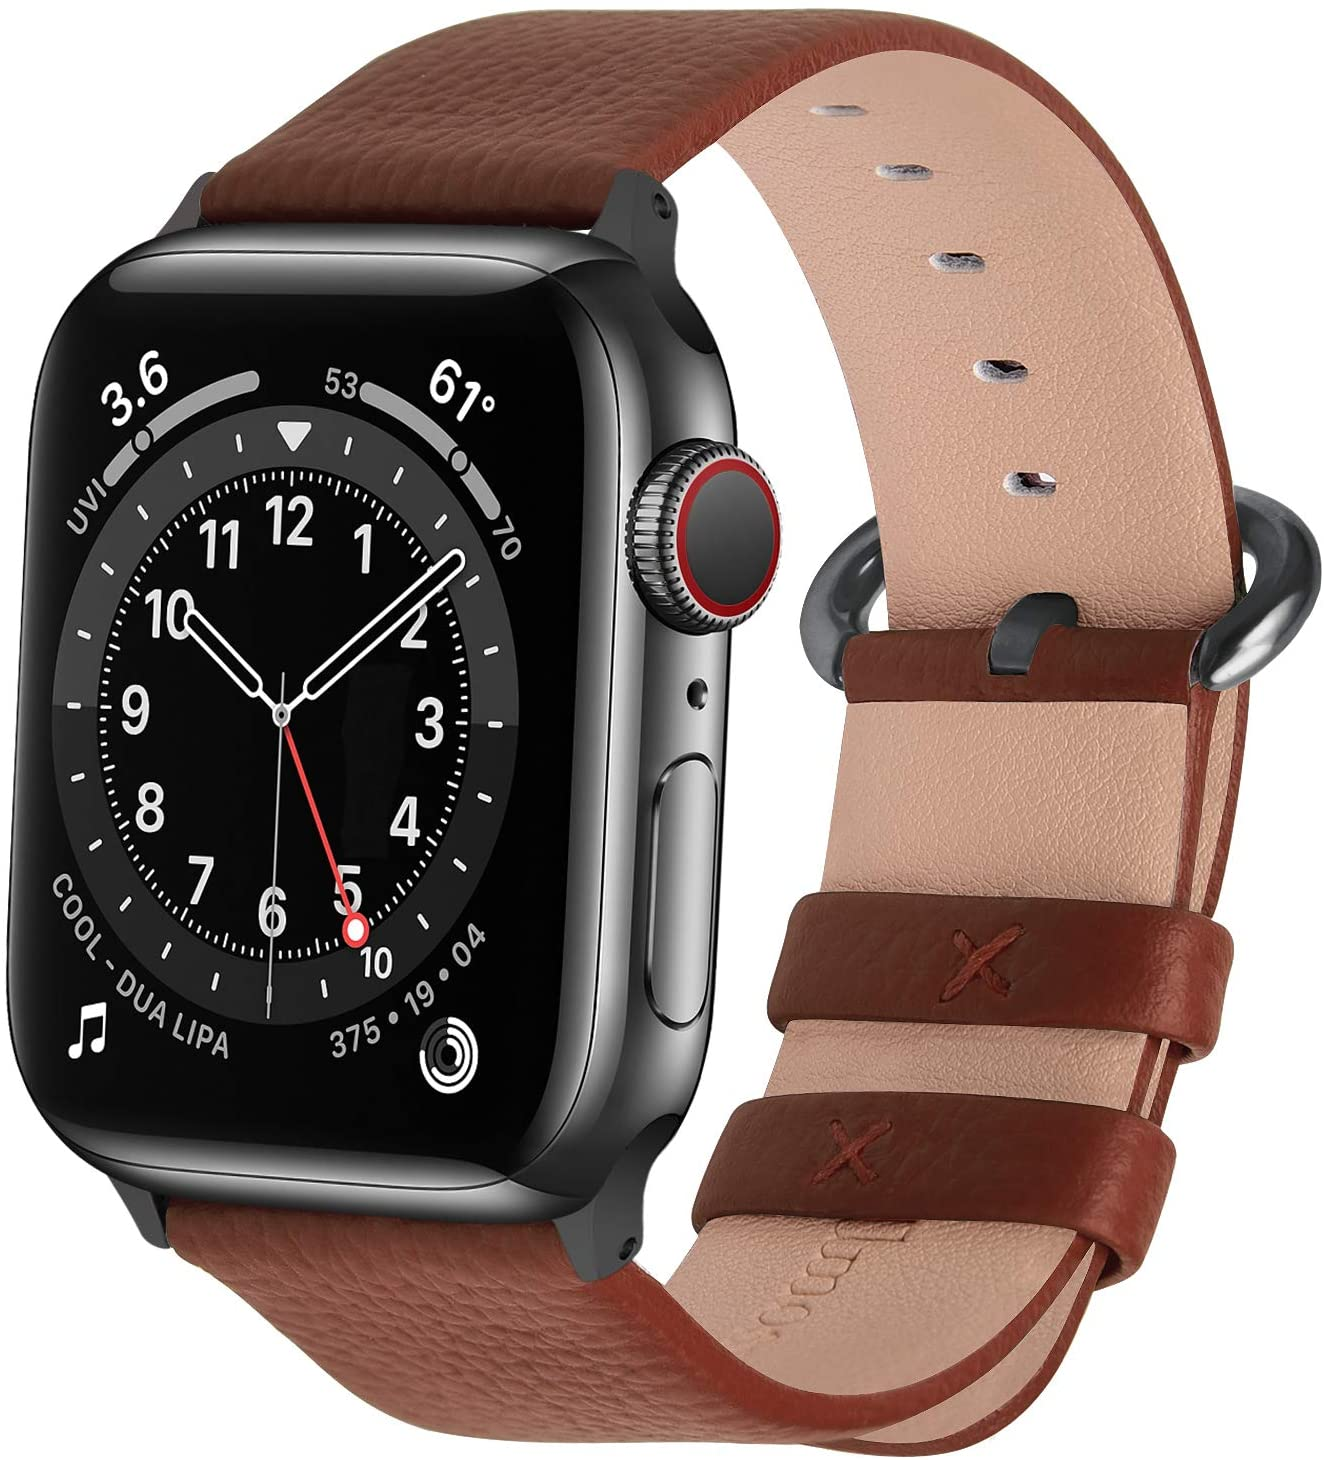 Fullmosa Compatible Apple Watch Band 42mm 44mm 40mm 38mm Leather Compatible iWatch Band/Strap Compatible Apple Watch SE & Series 6 5 4 3 2 1, 42mm 44mm Brown + Smoky Grey Buckle